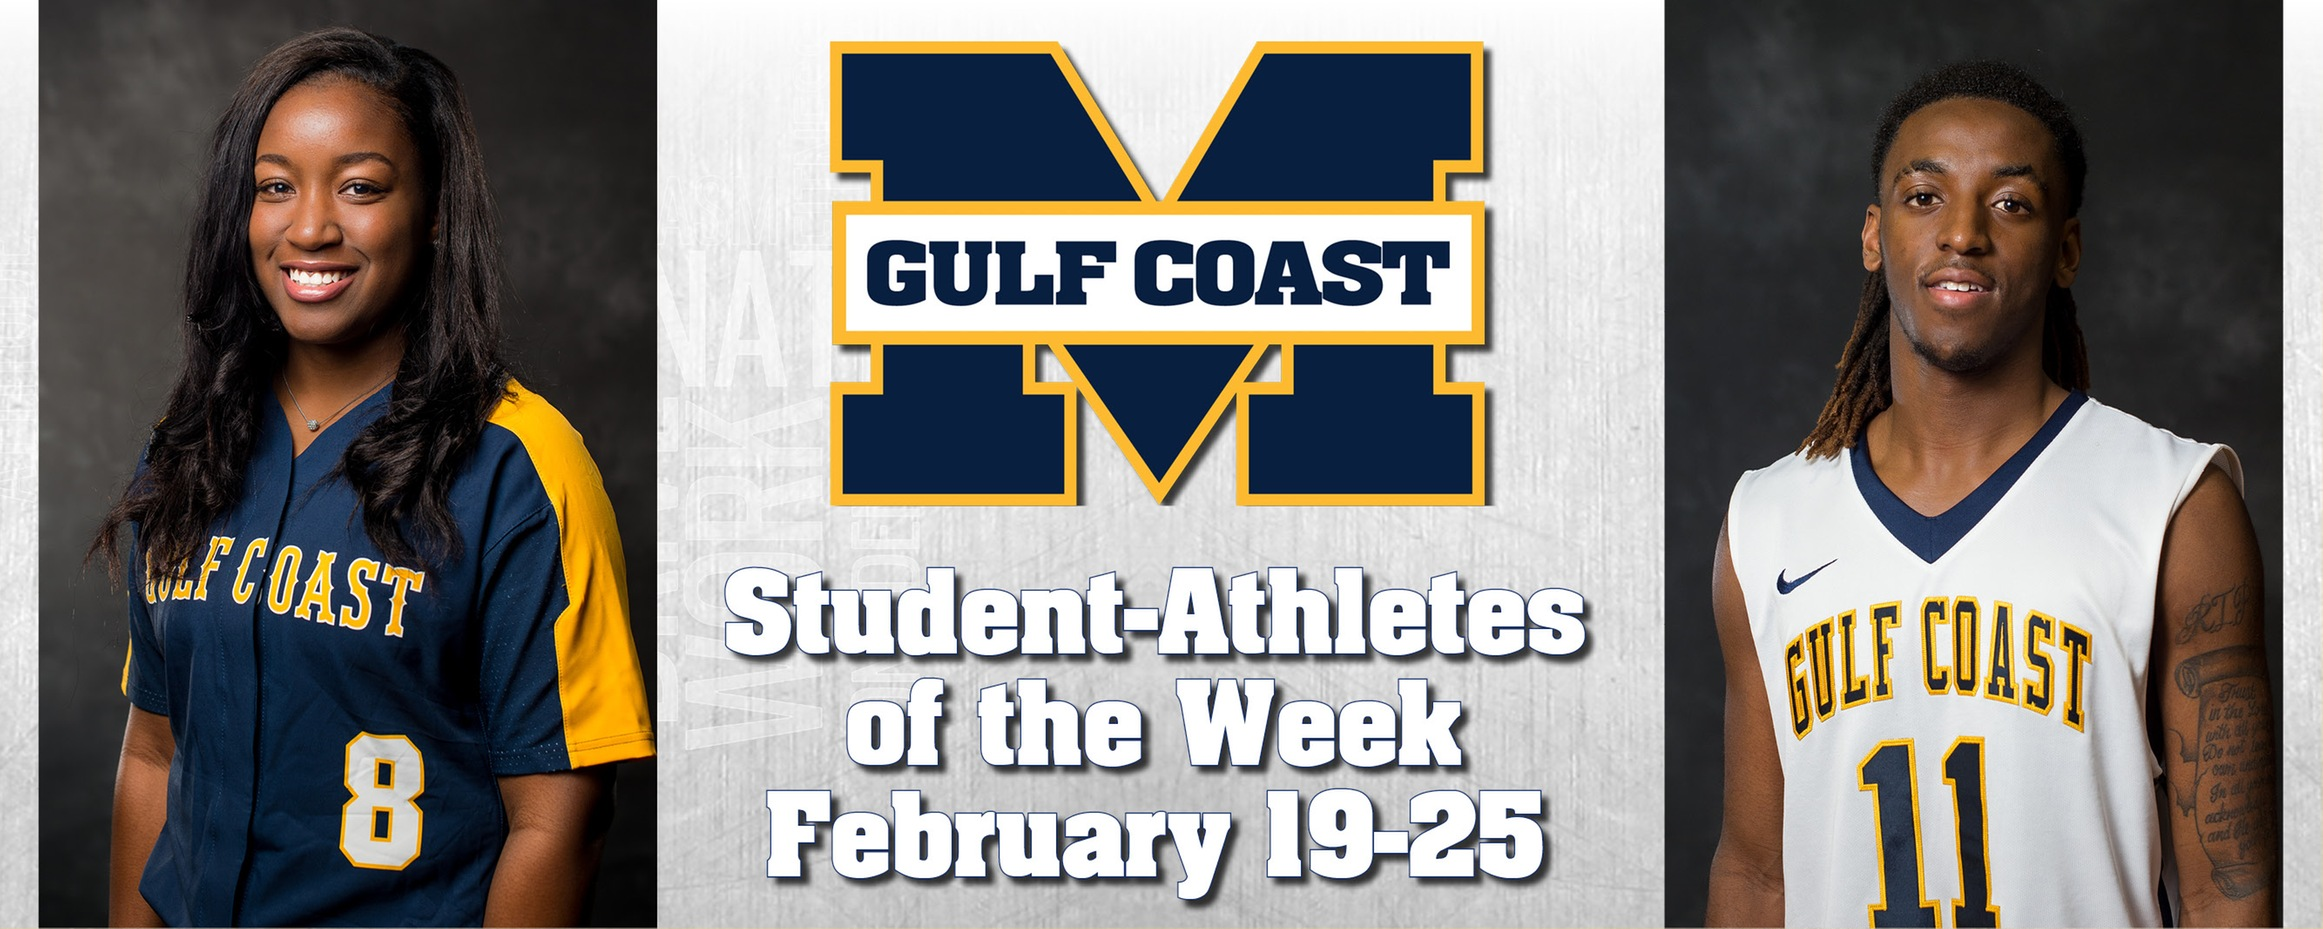 Hopson, Spivery named MGCCC Student-Athletes of the Week